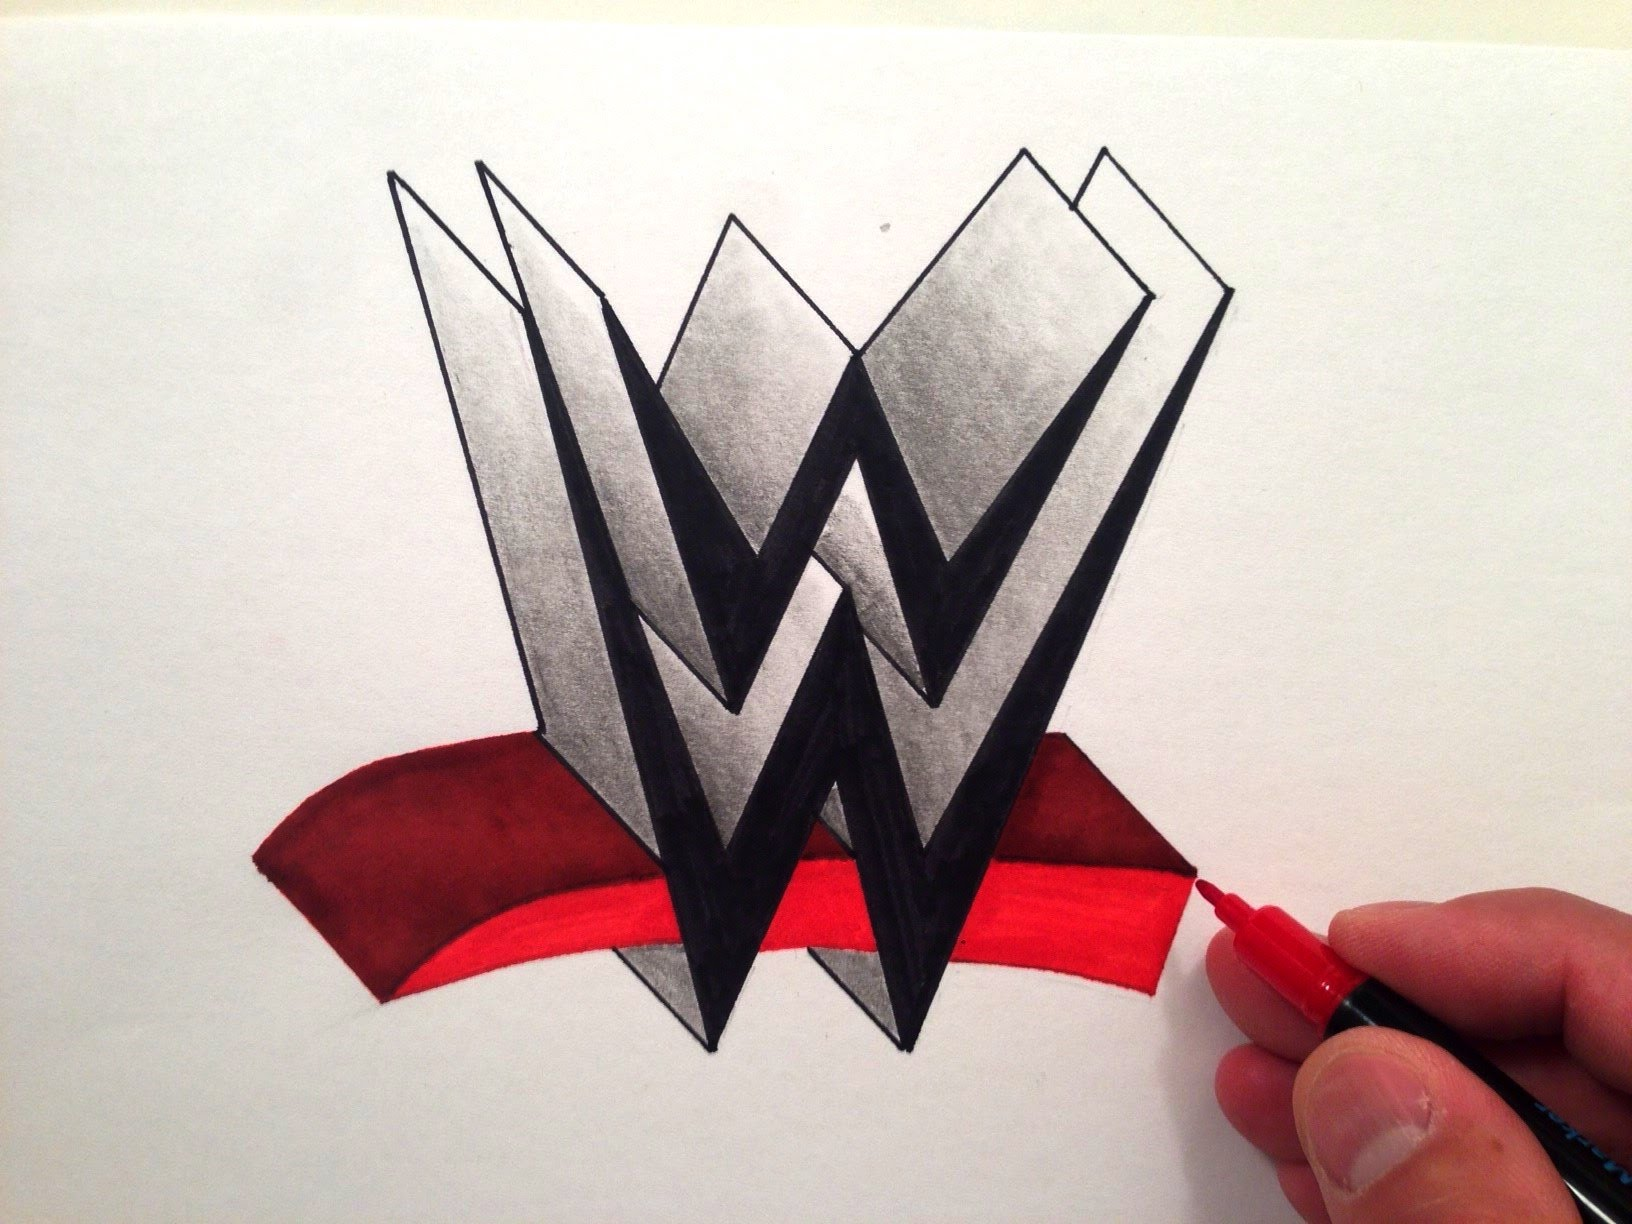 Wwe Logo Drawing at GetDrawings.com | Free for personal use Wwe Logo ...